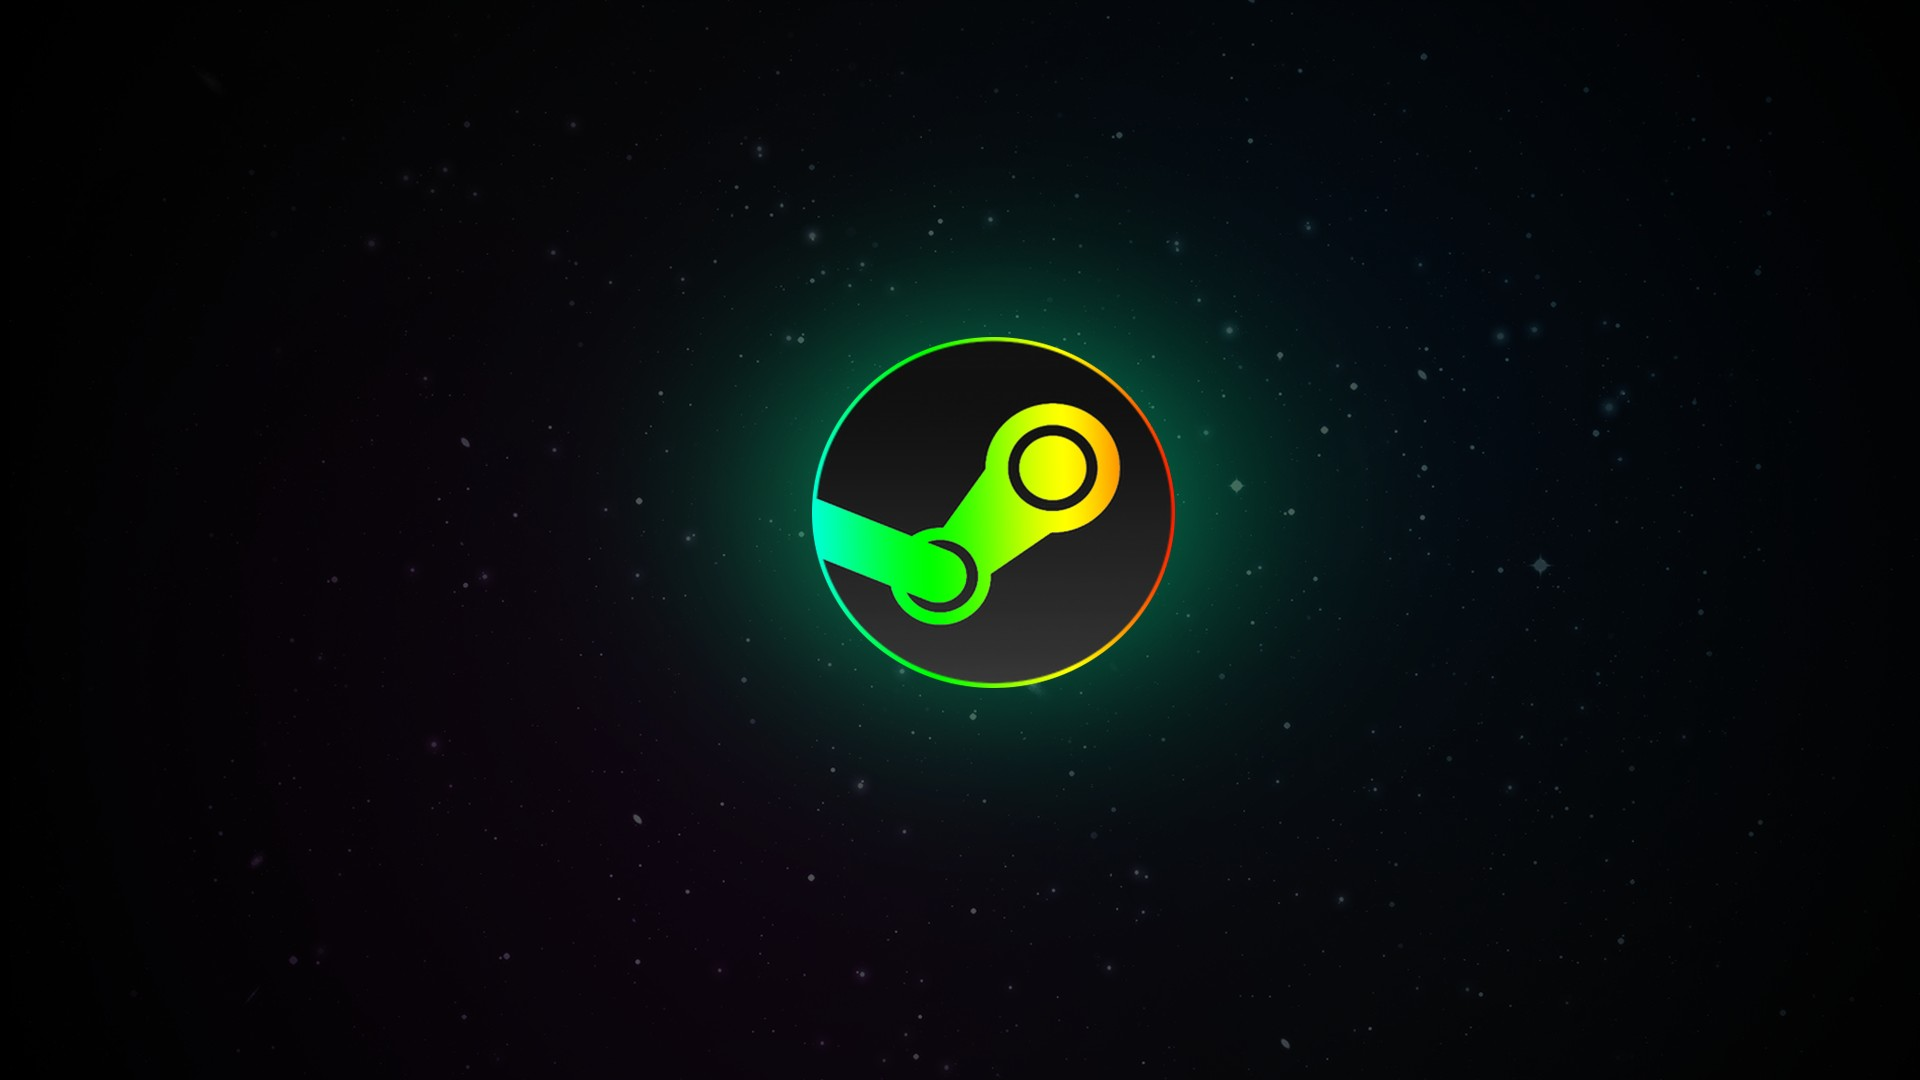 Steam Wallpapers  C B E  A Download Free Awesome Full Hd